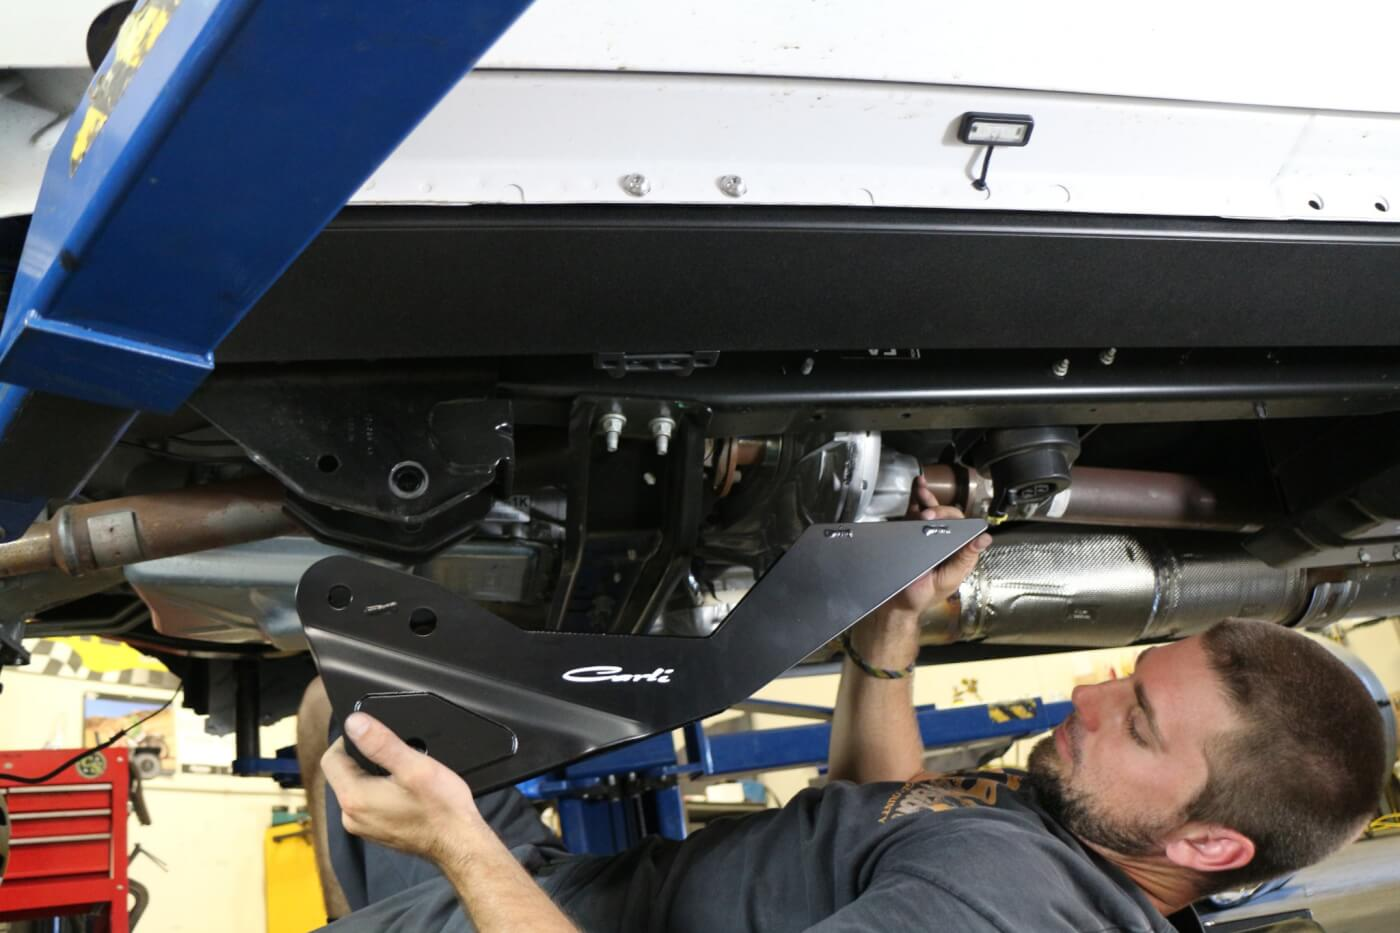 8. Before the new Carli front suspension arms can be installed, the drop down bracket must be installed on the frame.